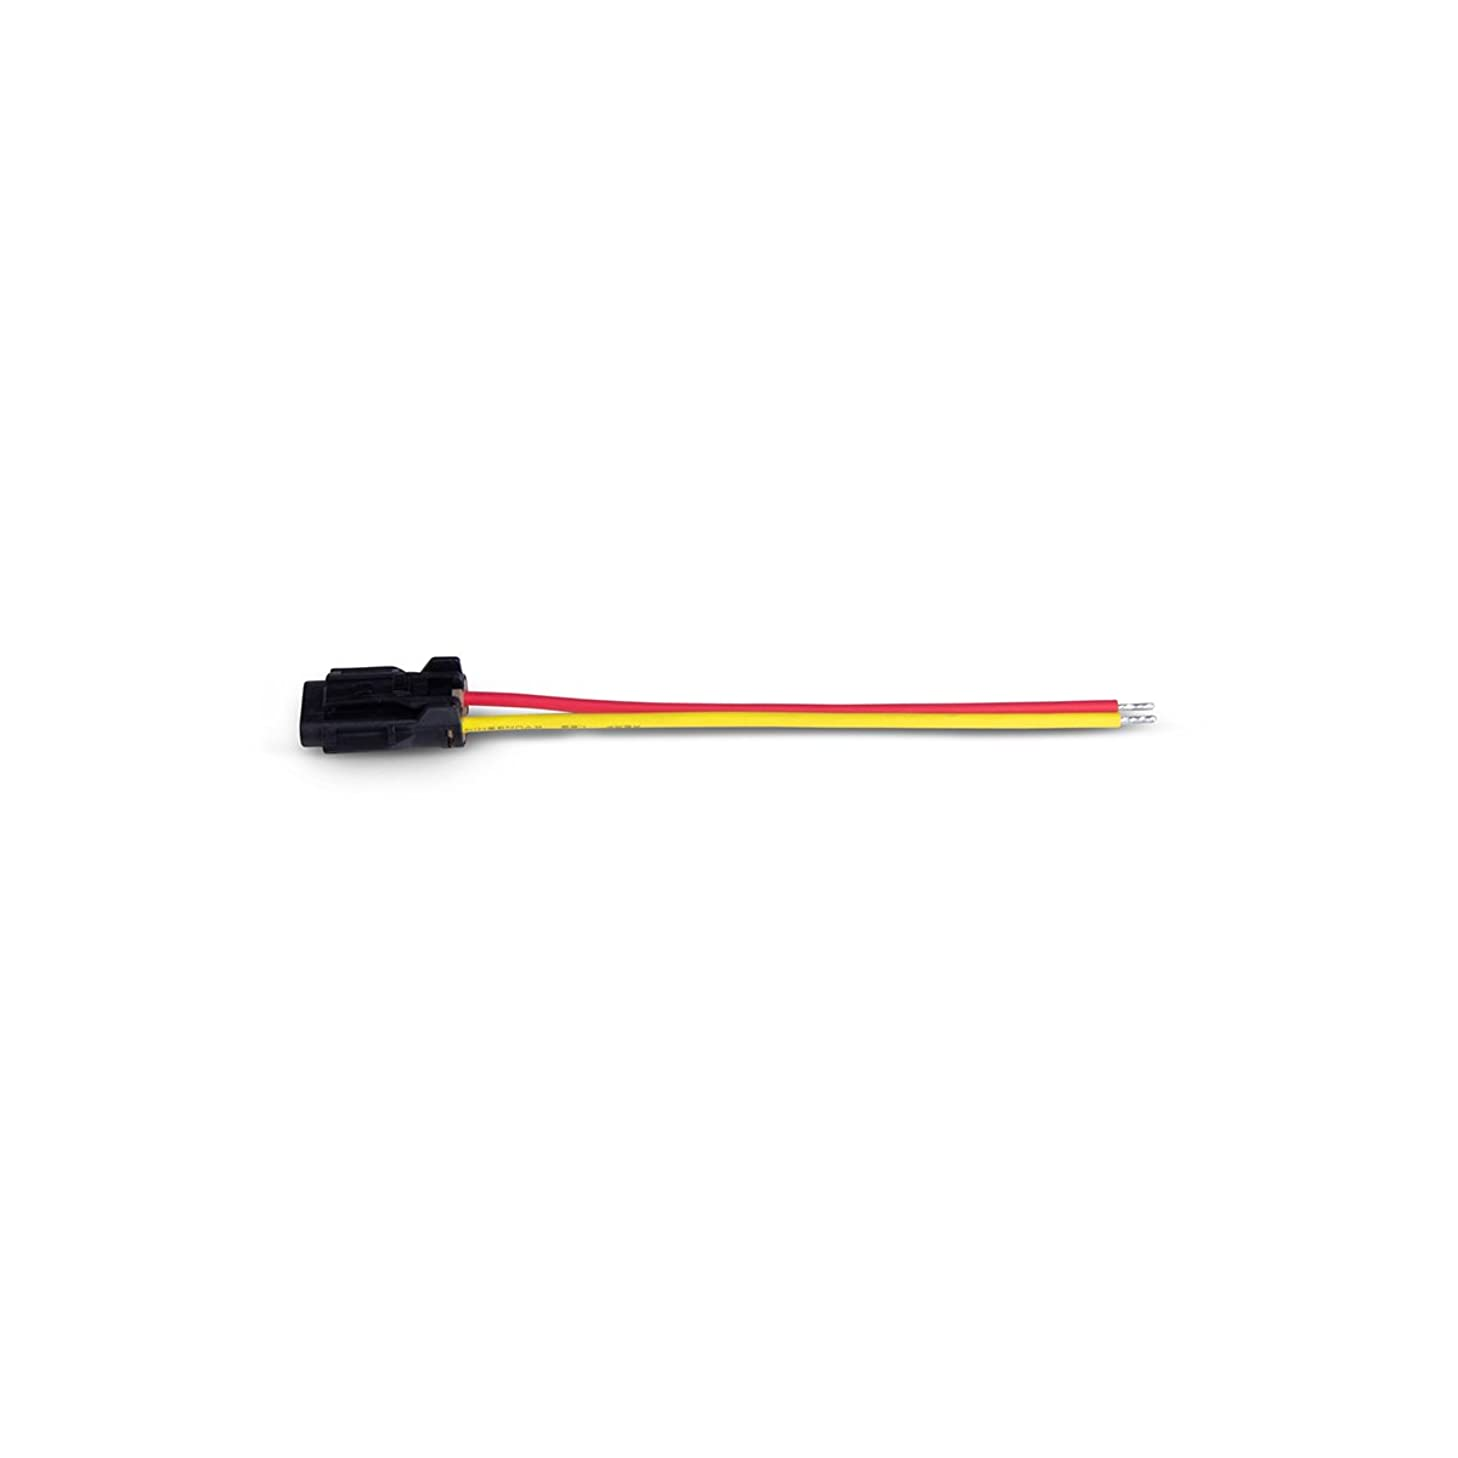 Kwikee 1809940 Classic Power Step Electrical Components